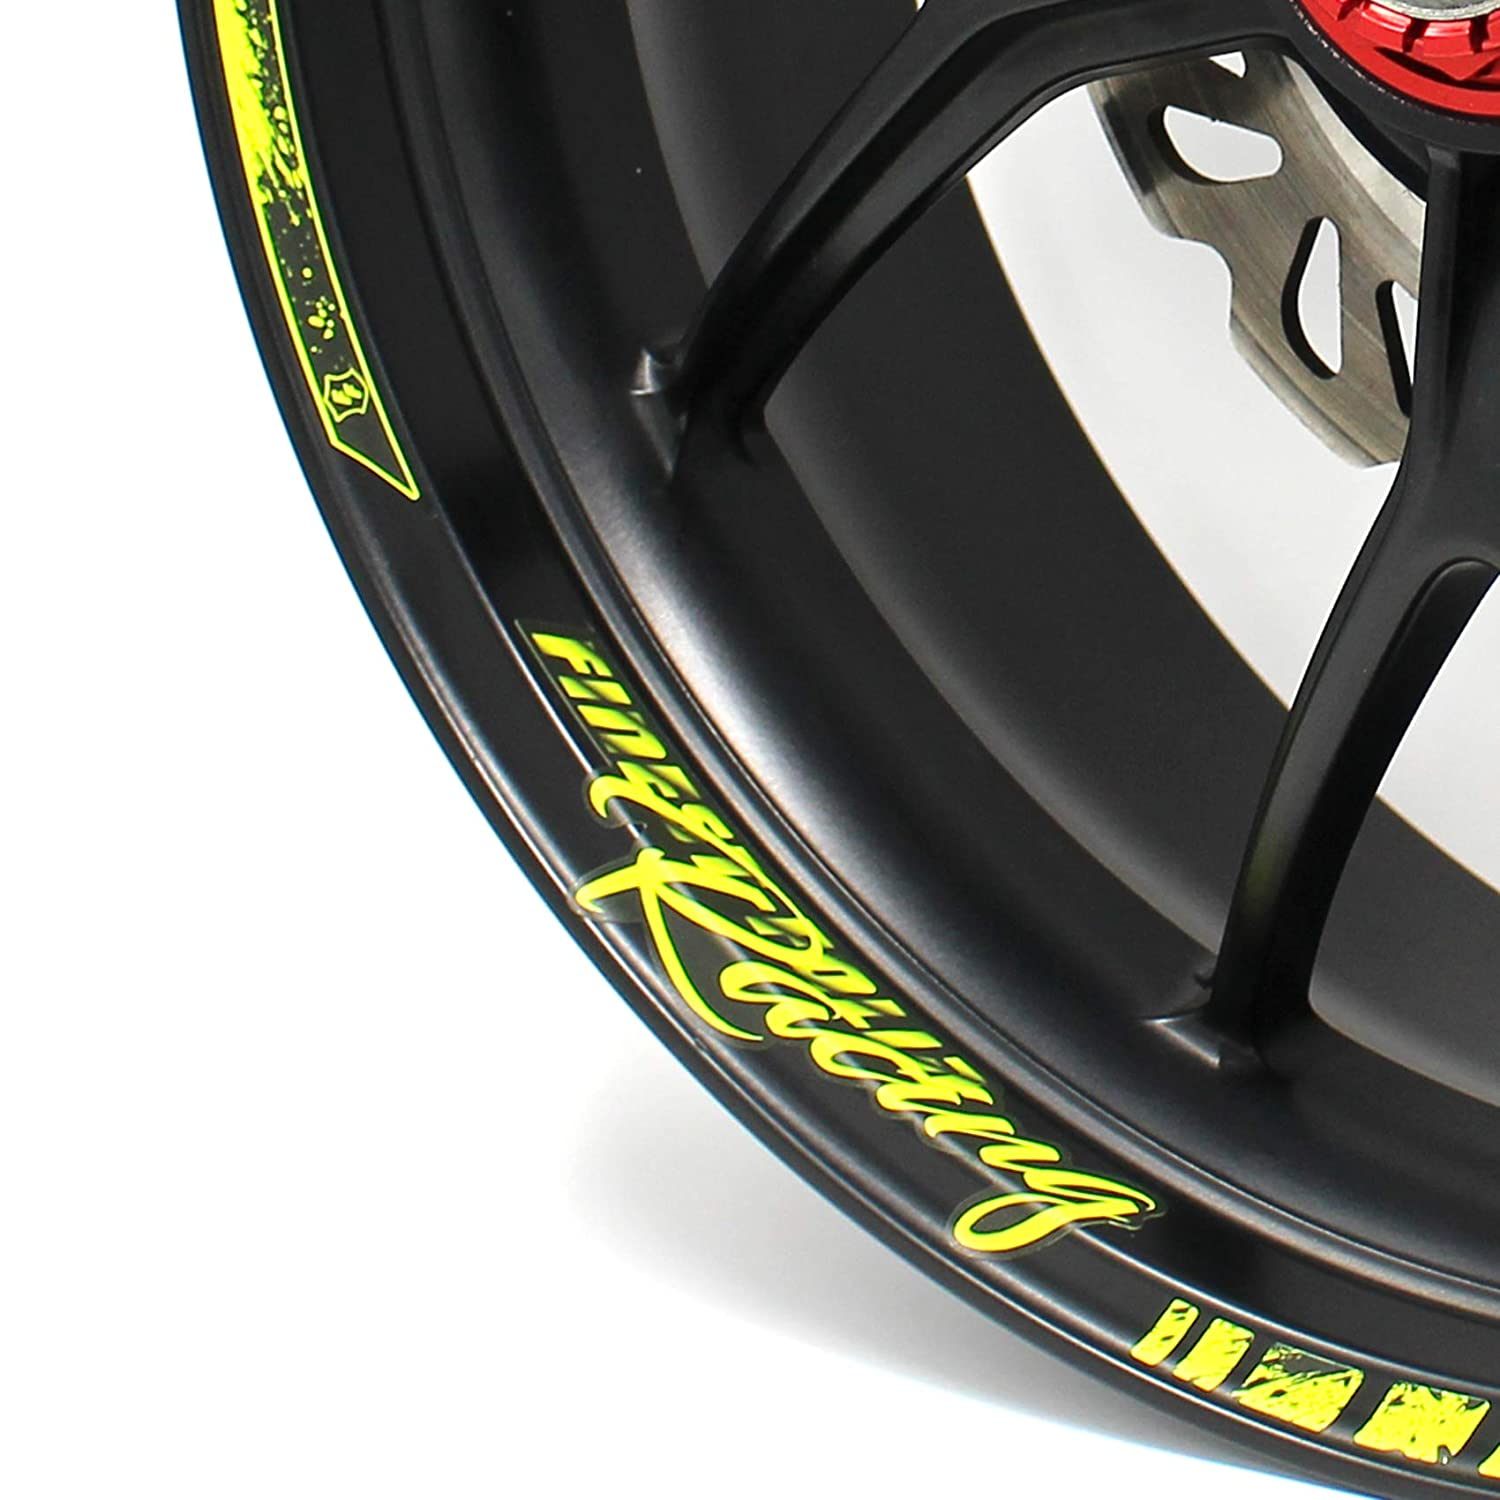 Rim Well Decal Motorcycle Car Bicycle Wheel Rim Design incl Complete Set 18-piece Rim Edge Sticker Neon Line by Finest Folia Fits 17 inch /& 16 18 19 Rims neon pink, glossy